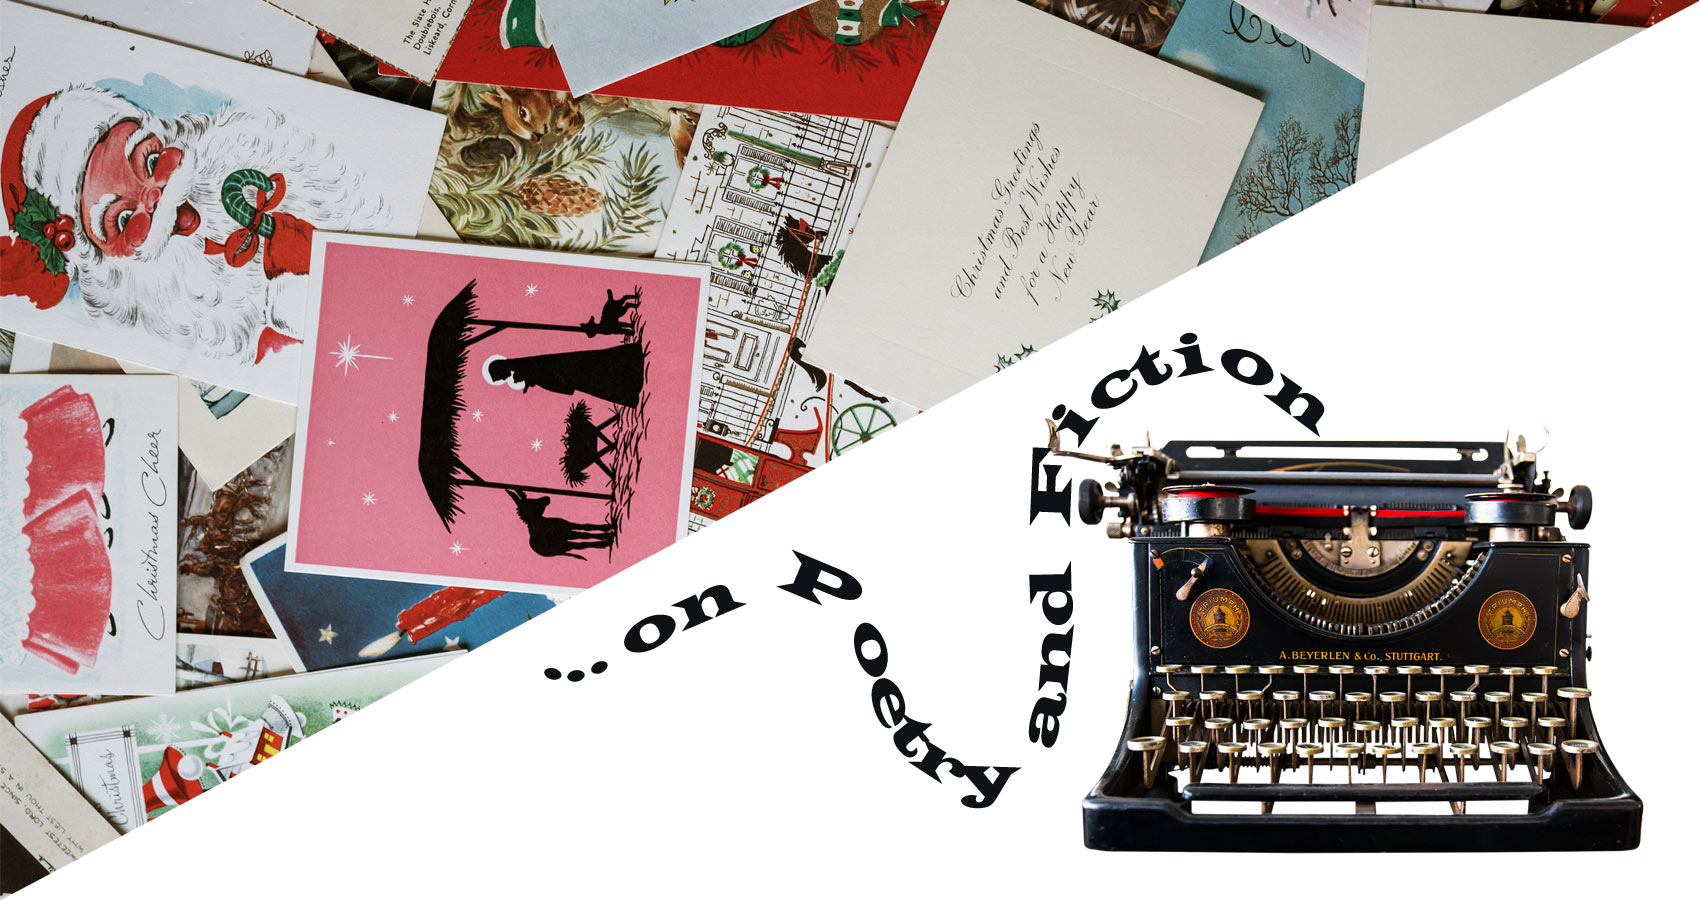 """...on Poetry and Fiction - Just """"One Word"""" Away (""""Christmas""""), editorial by Phyllis P. Colucci at Spillwords.com"""